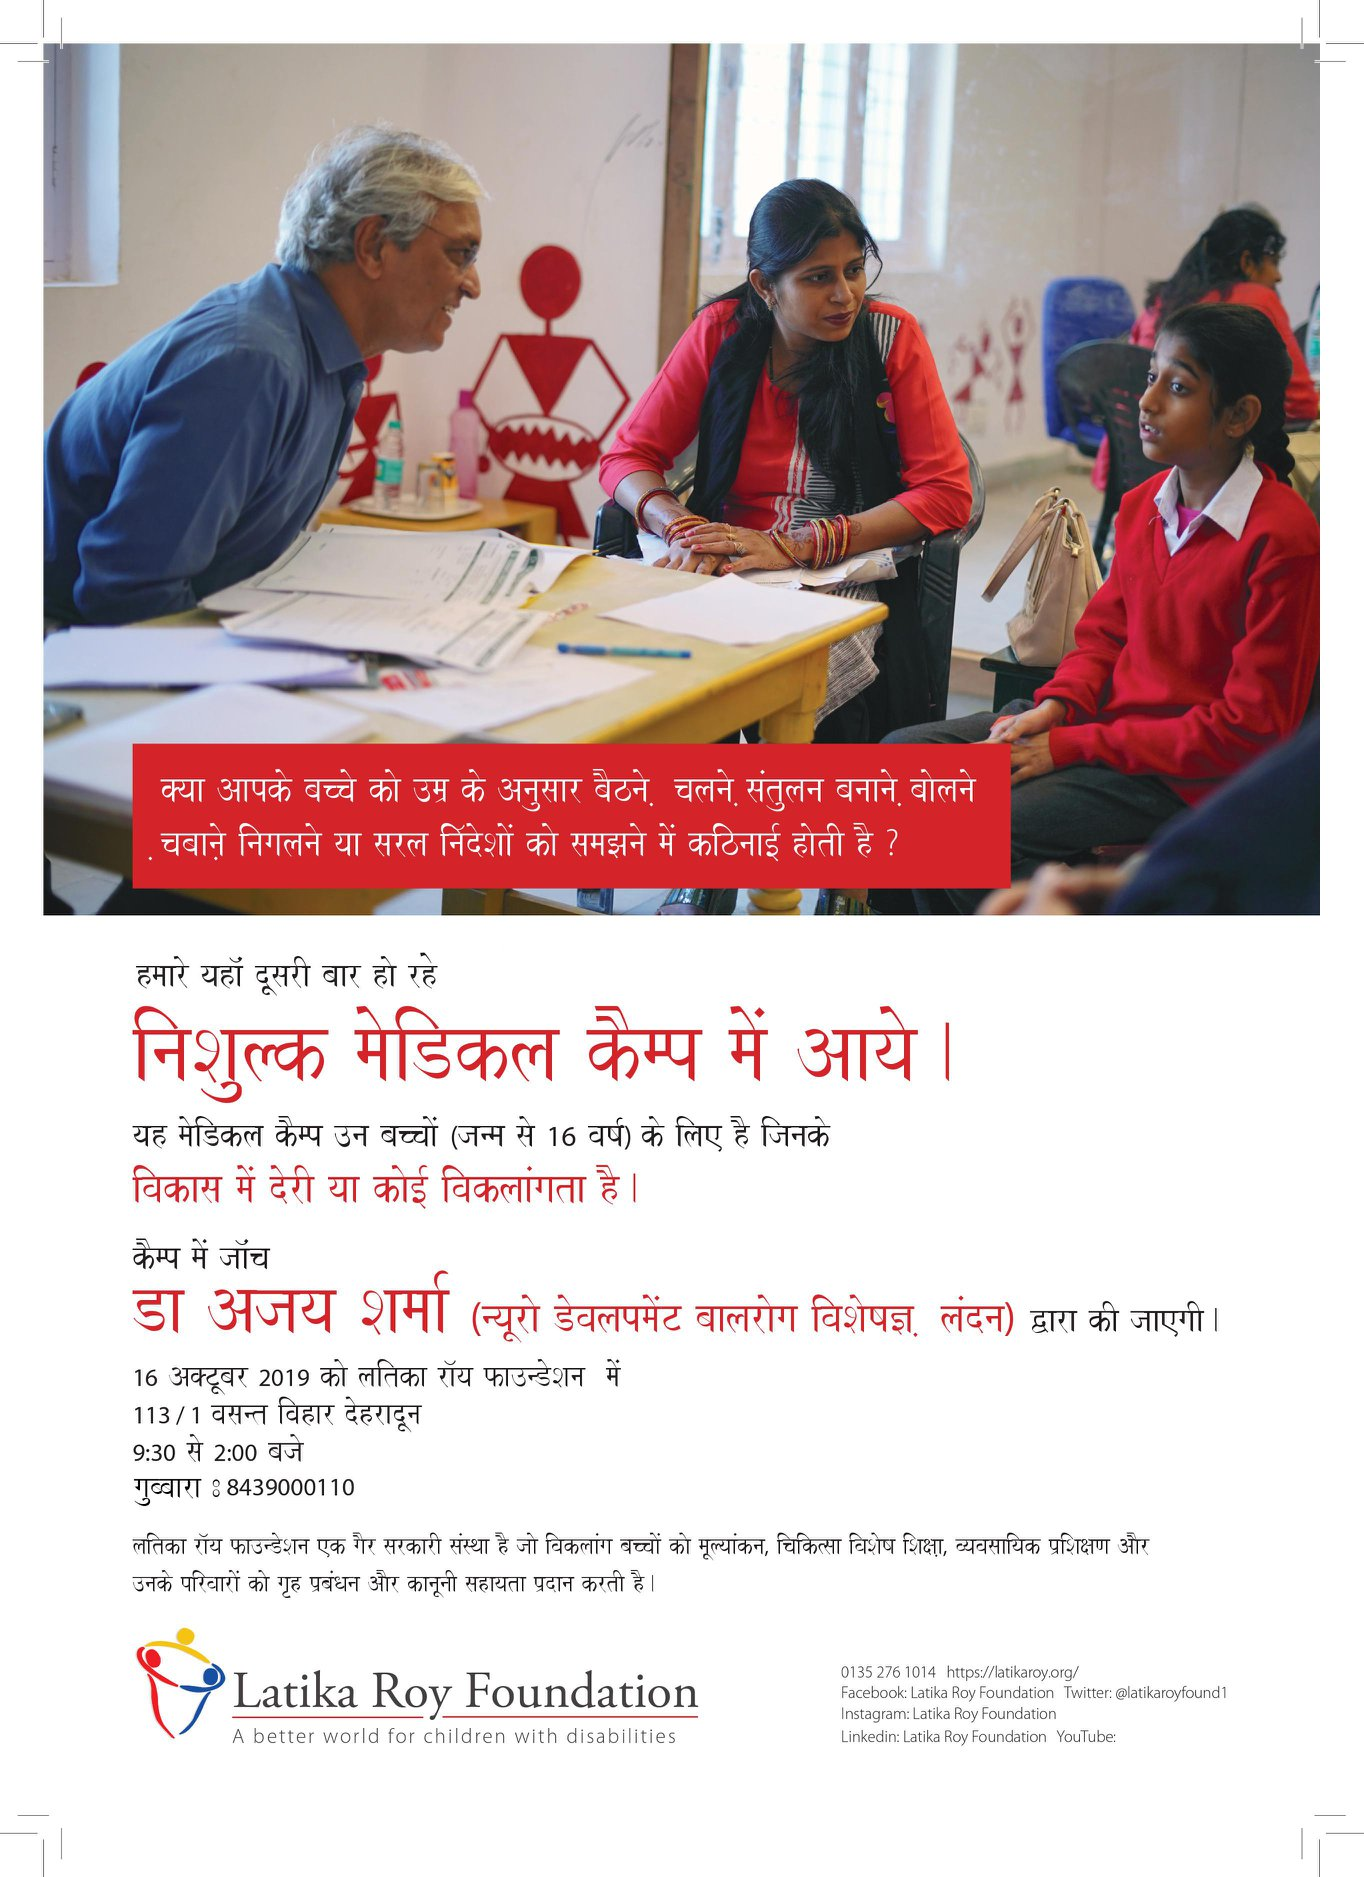 Back by popular demand, our second Assessment Camp by Dr Ajay Sharma, renowned pediatrician from the UK